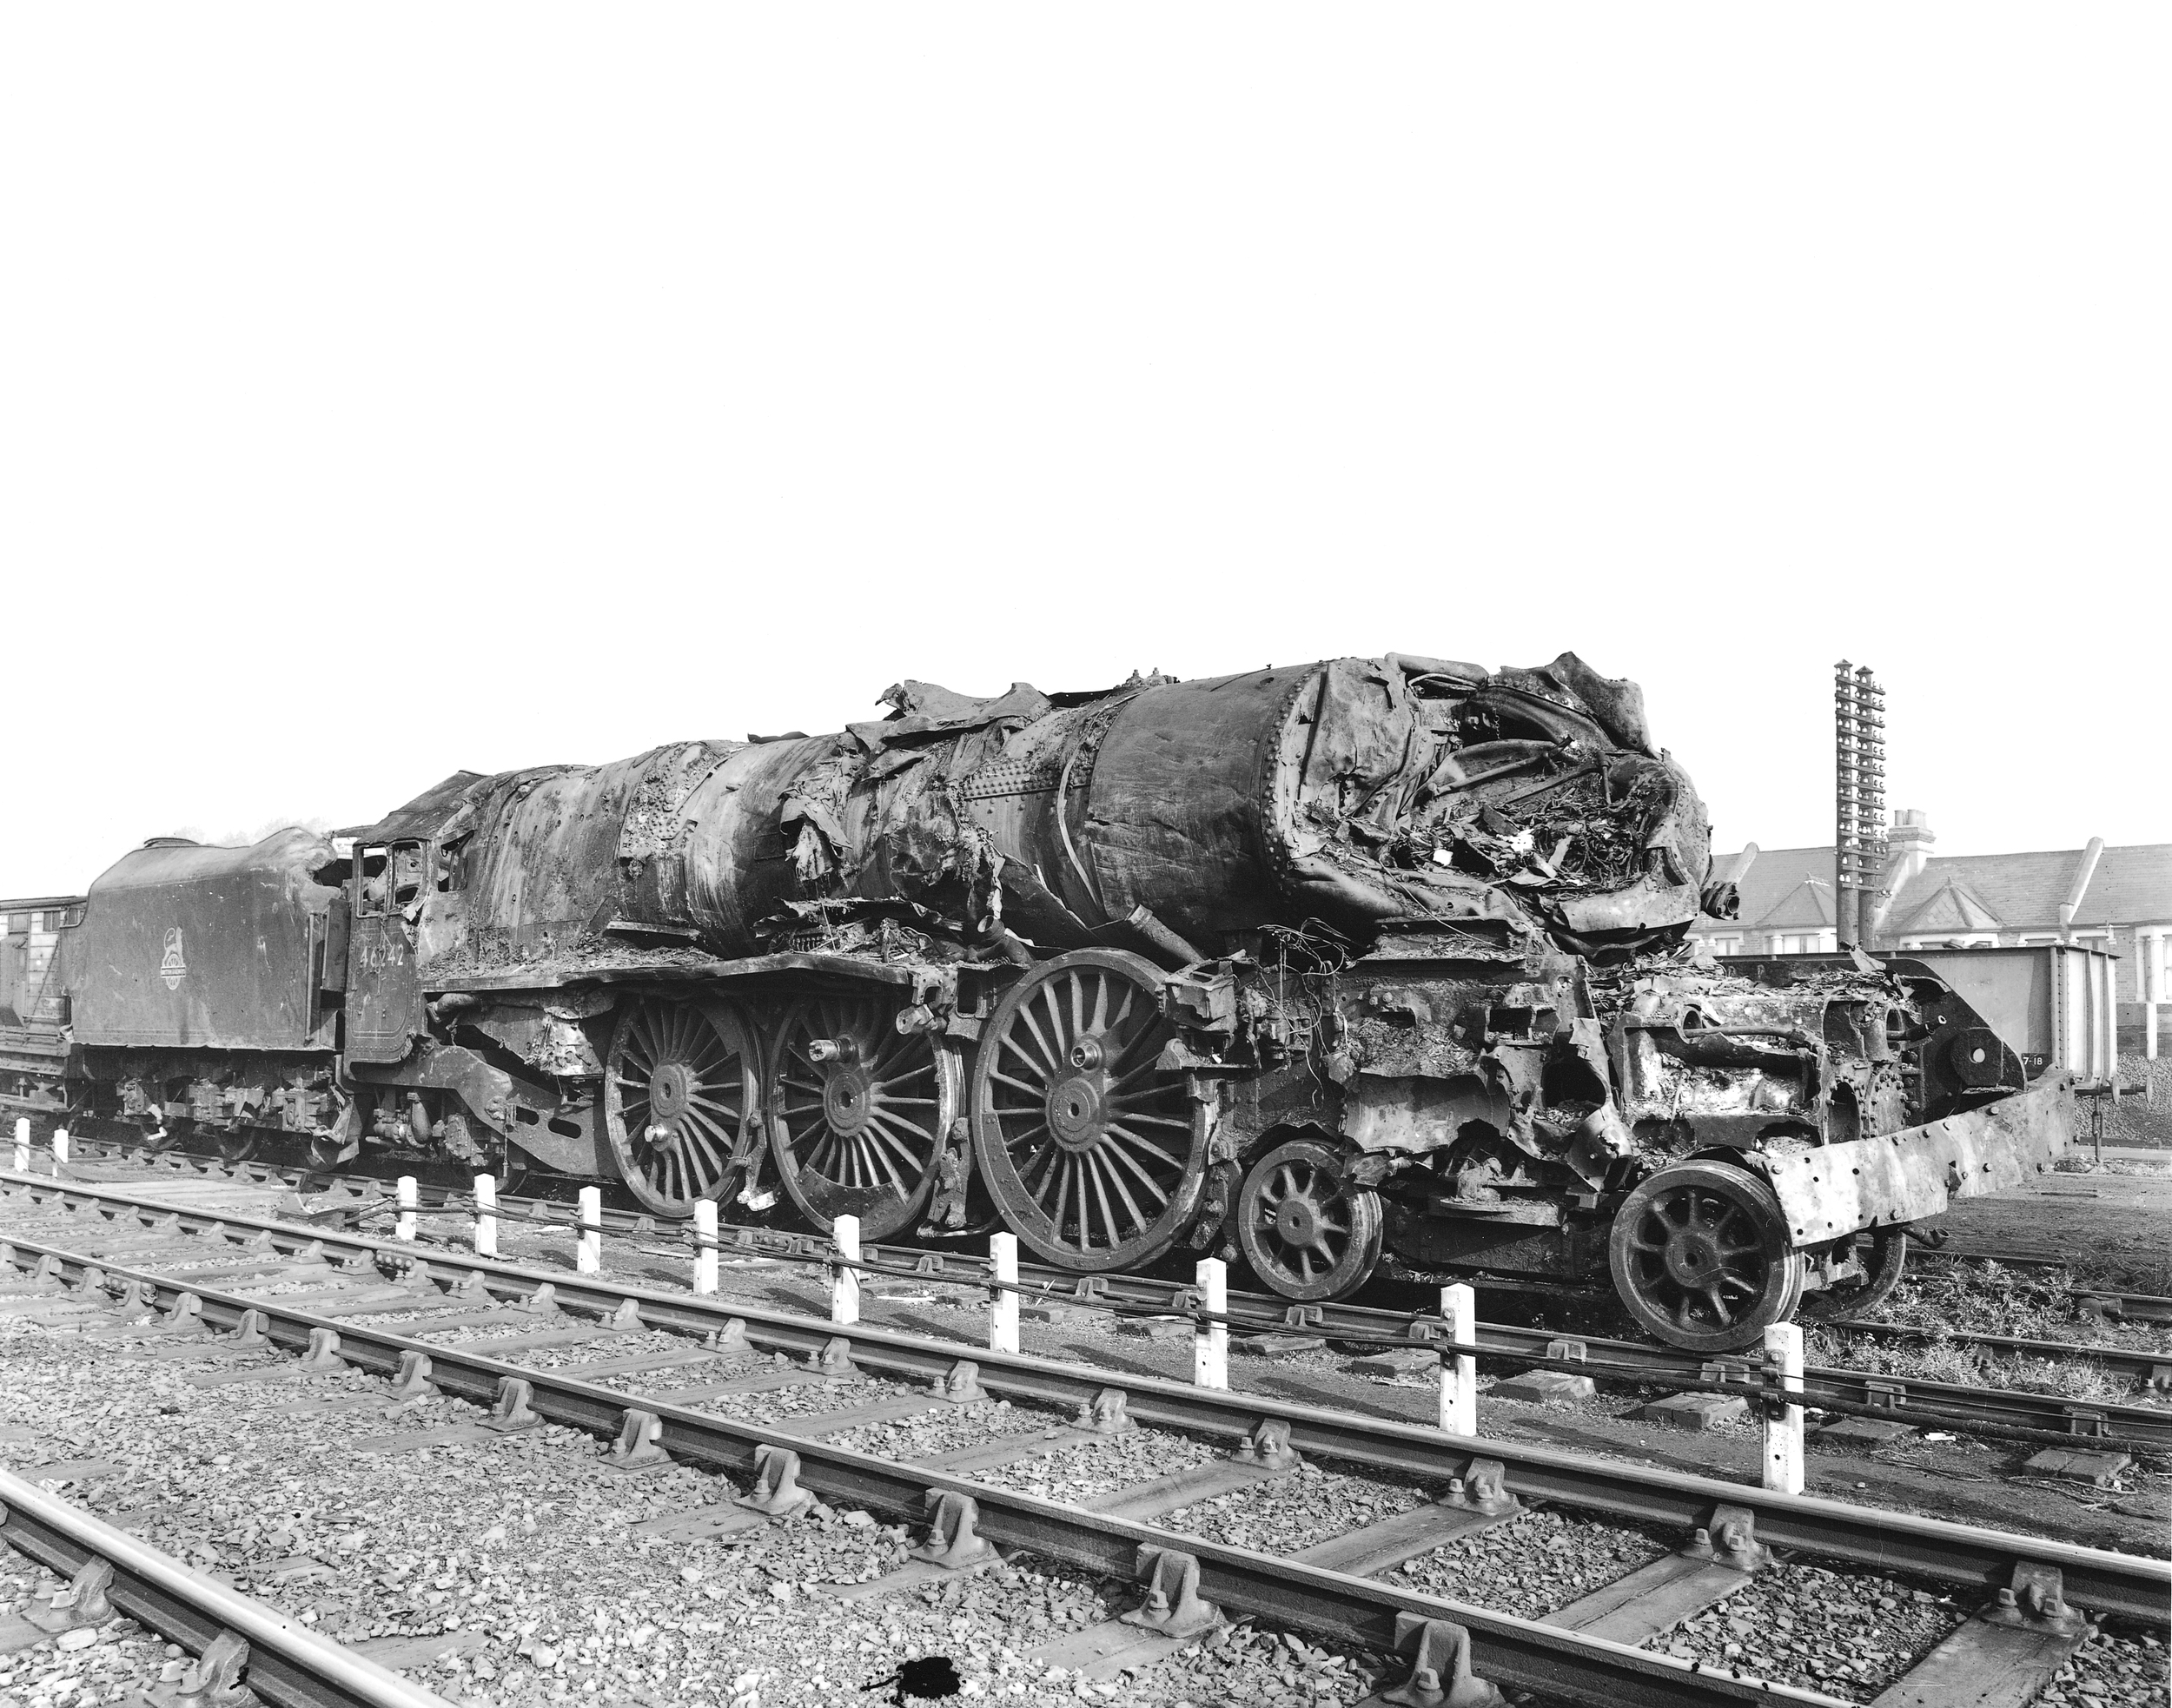 The battered remains of 'Princess Coronation' No. 46242  City of Glasgow  after the Harrow & Wealdstone disaster. The locomotive's crew were killed in the accident, along with 110 others. NRM